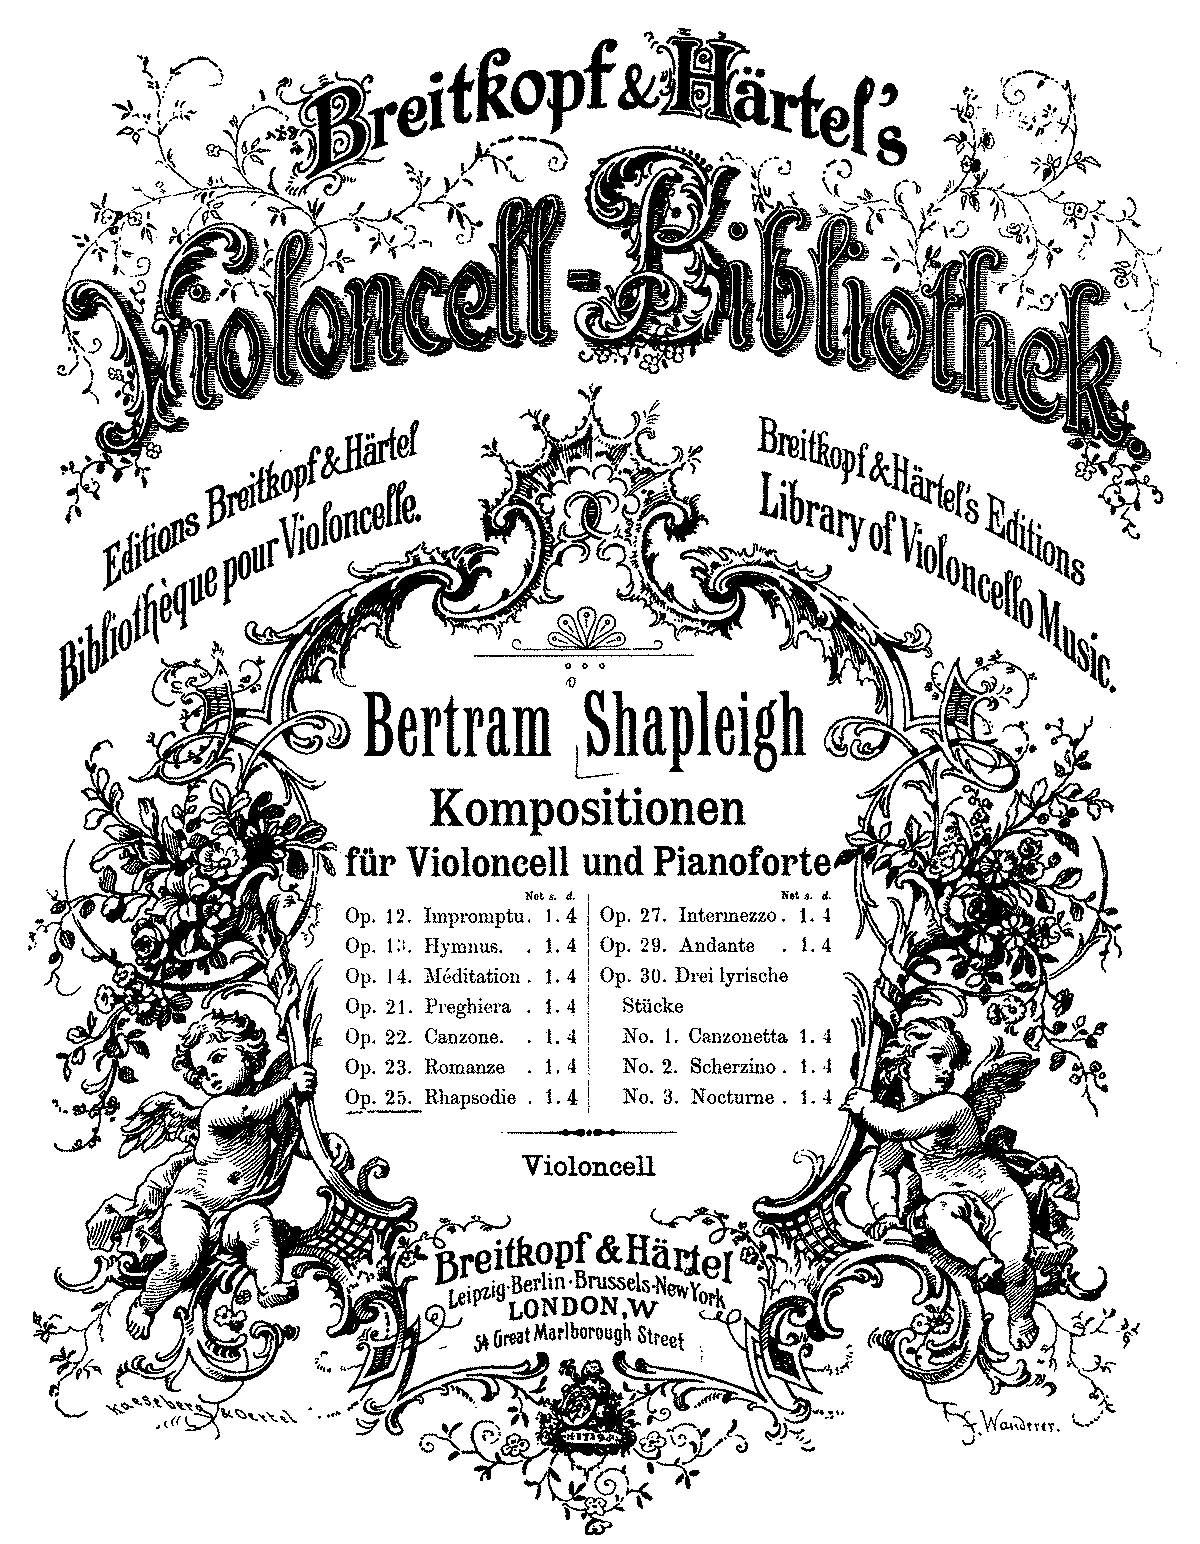 PMLP215545-Shapleigh - Rhapsodie Op25 for cello and piano score.pdf